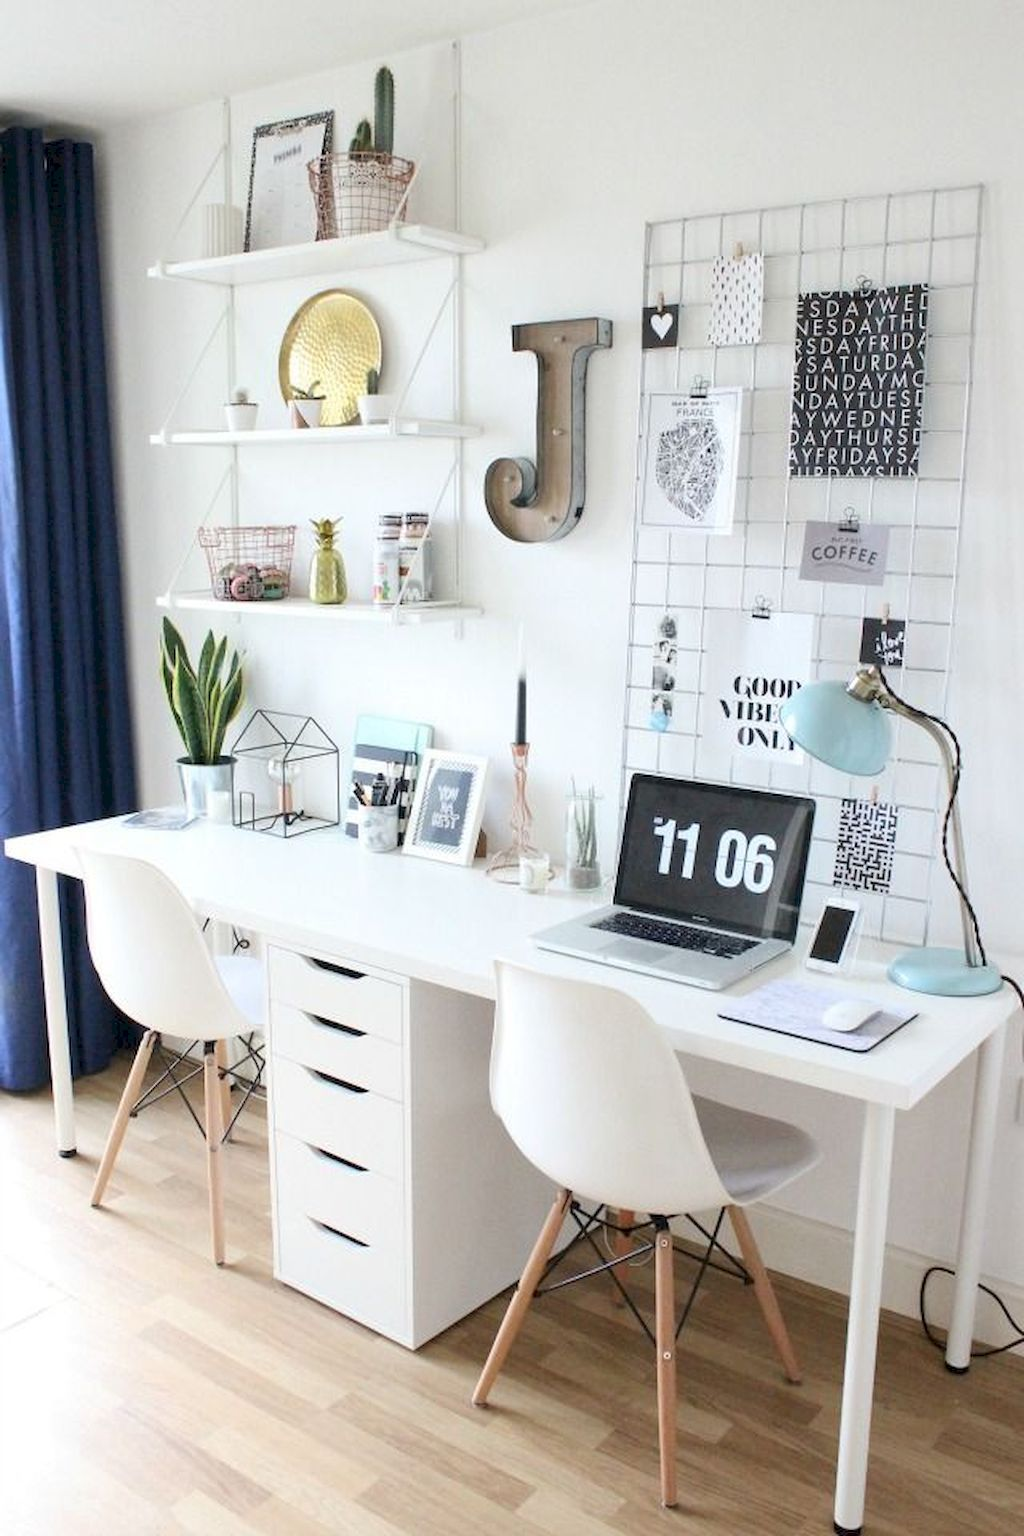 55 Modern Workspace Design Ideas Small Spaces Home Office Decor Room Decor Home Decor